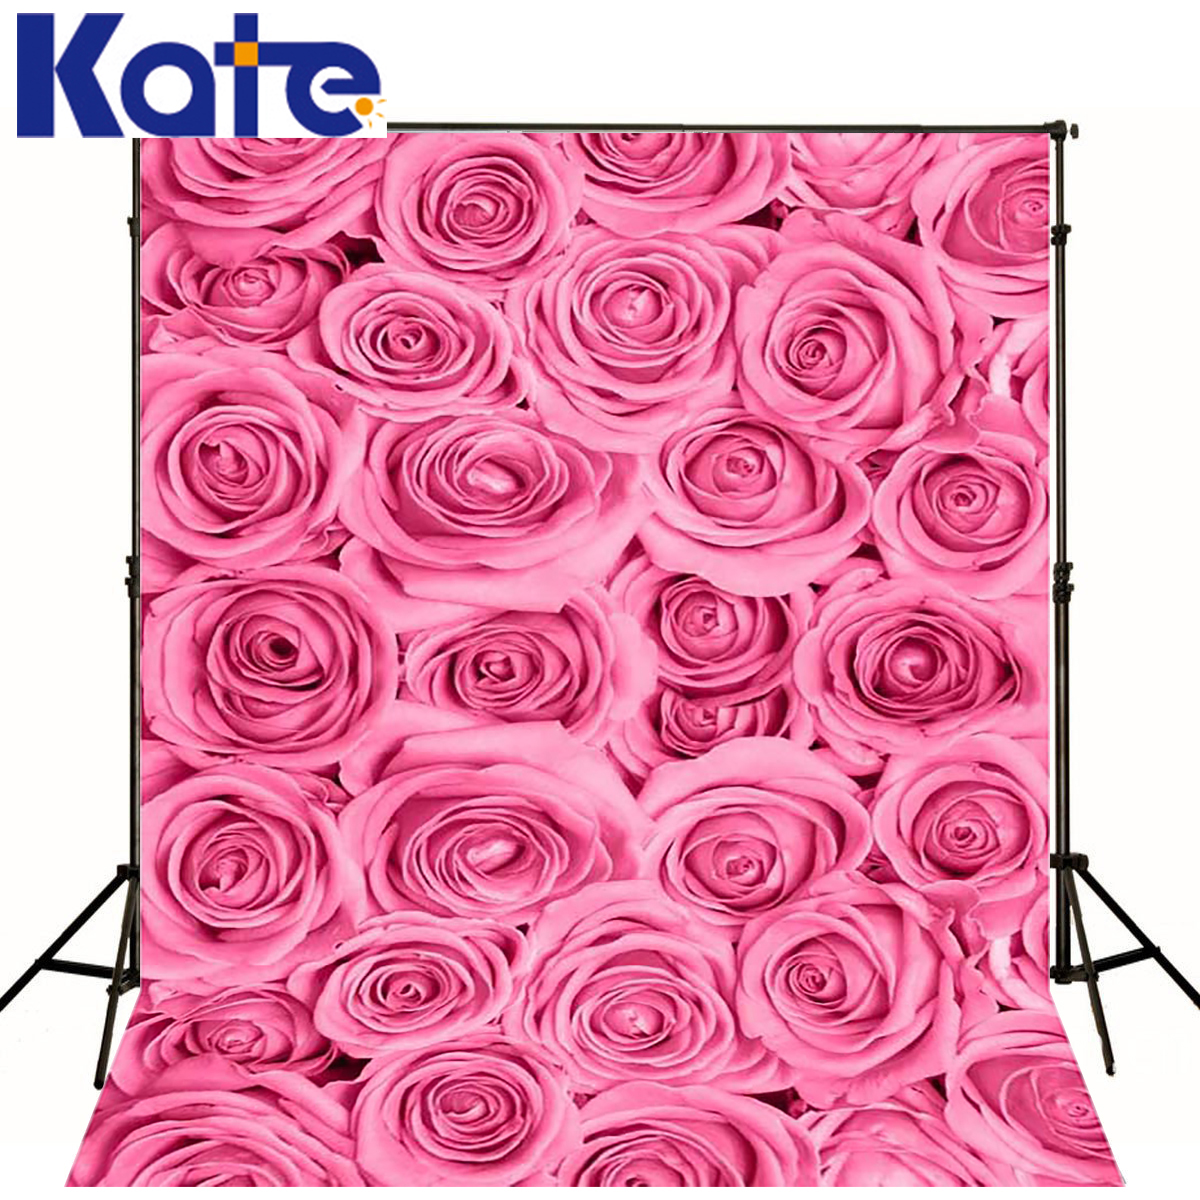 KATE Valentine'S Day  Backdrop Photography Backdrops 5x7ft 3D Pattern Backdrop Pink Roses photocall backgrounds for Photo Studio 8x10ft valentine s day photography pink love heart shape adult portrait backdrop d 7324